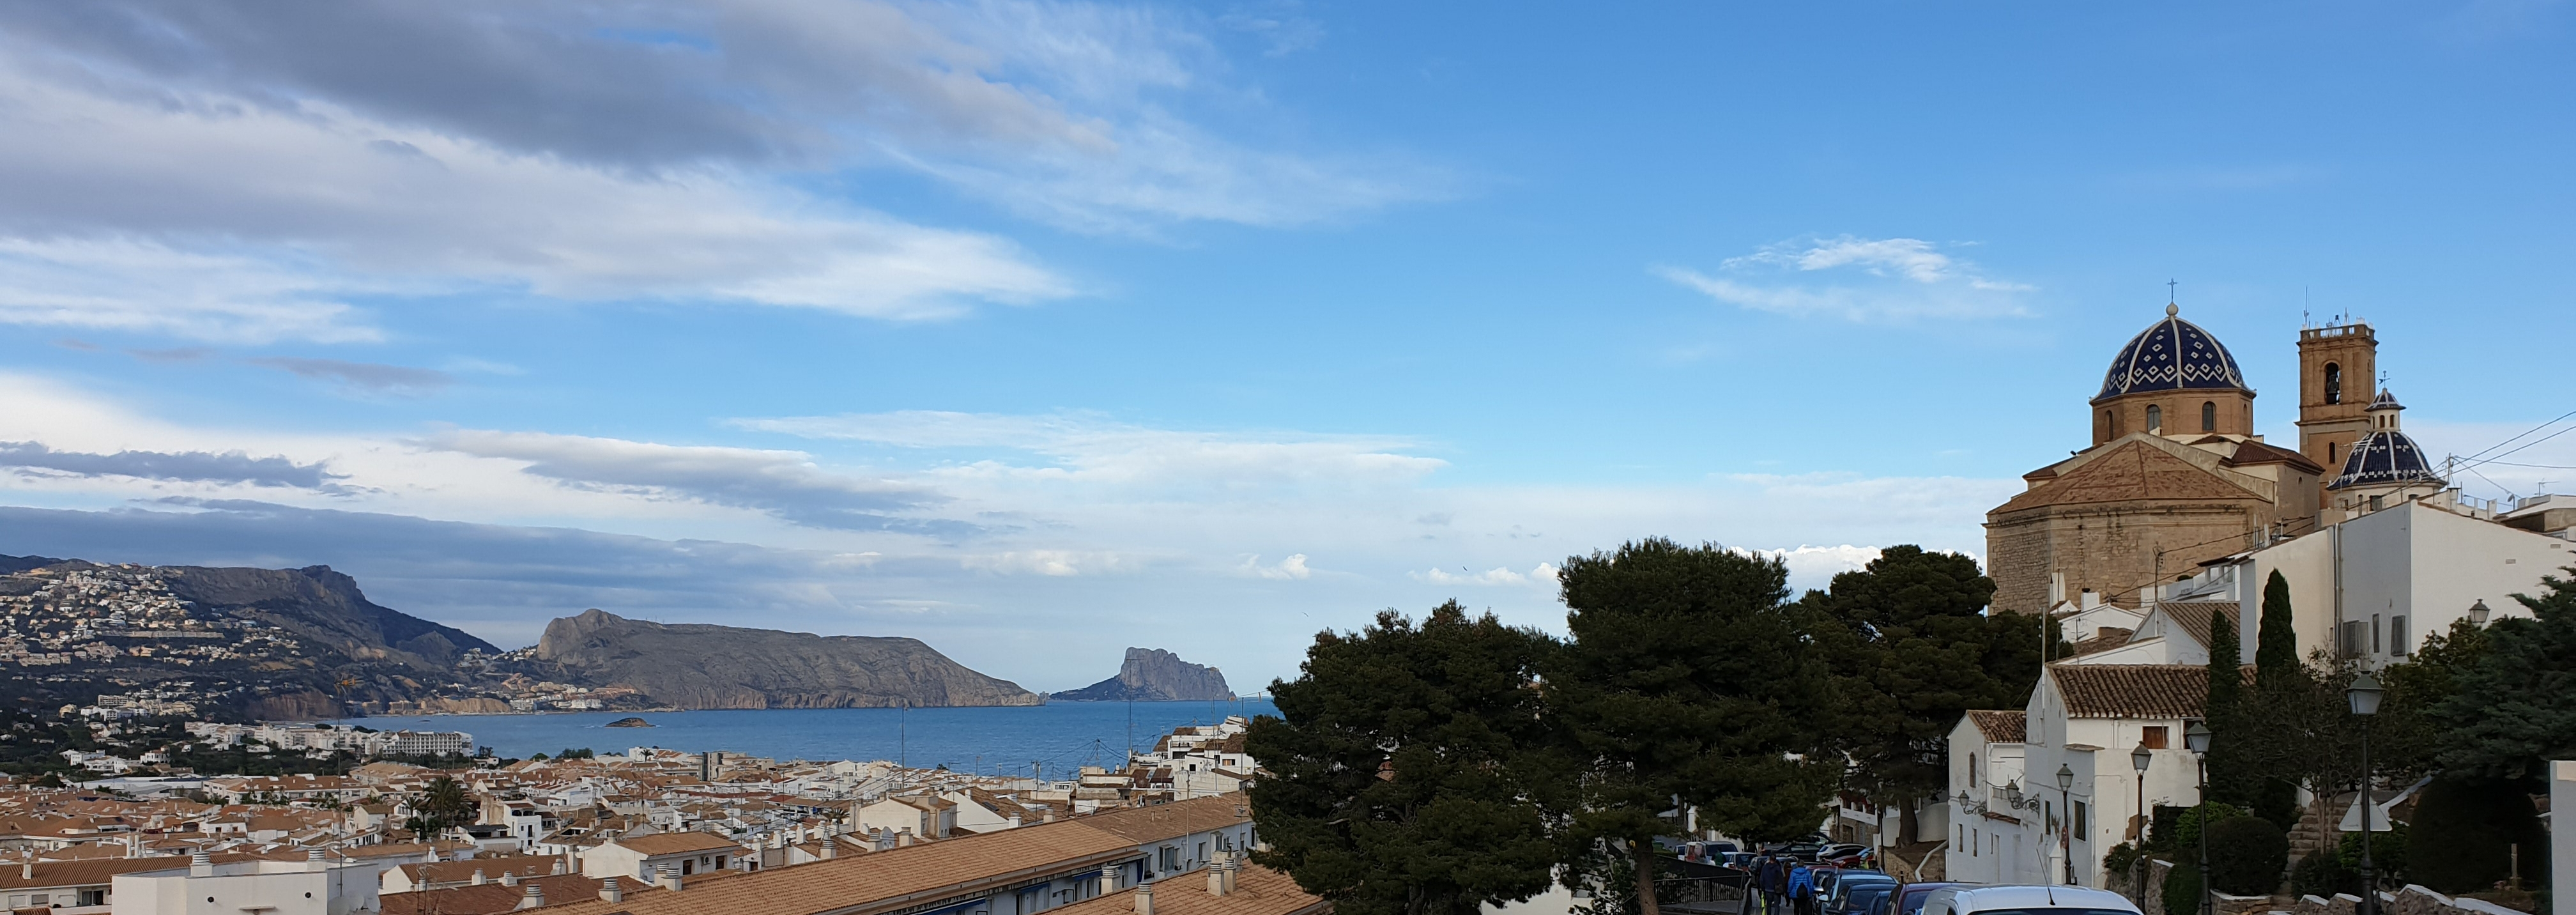 Altea view from the back